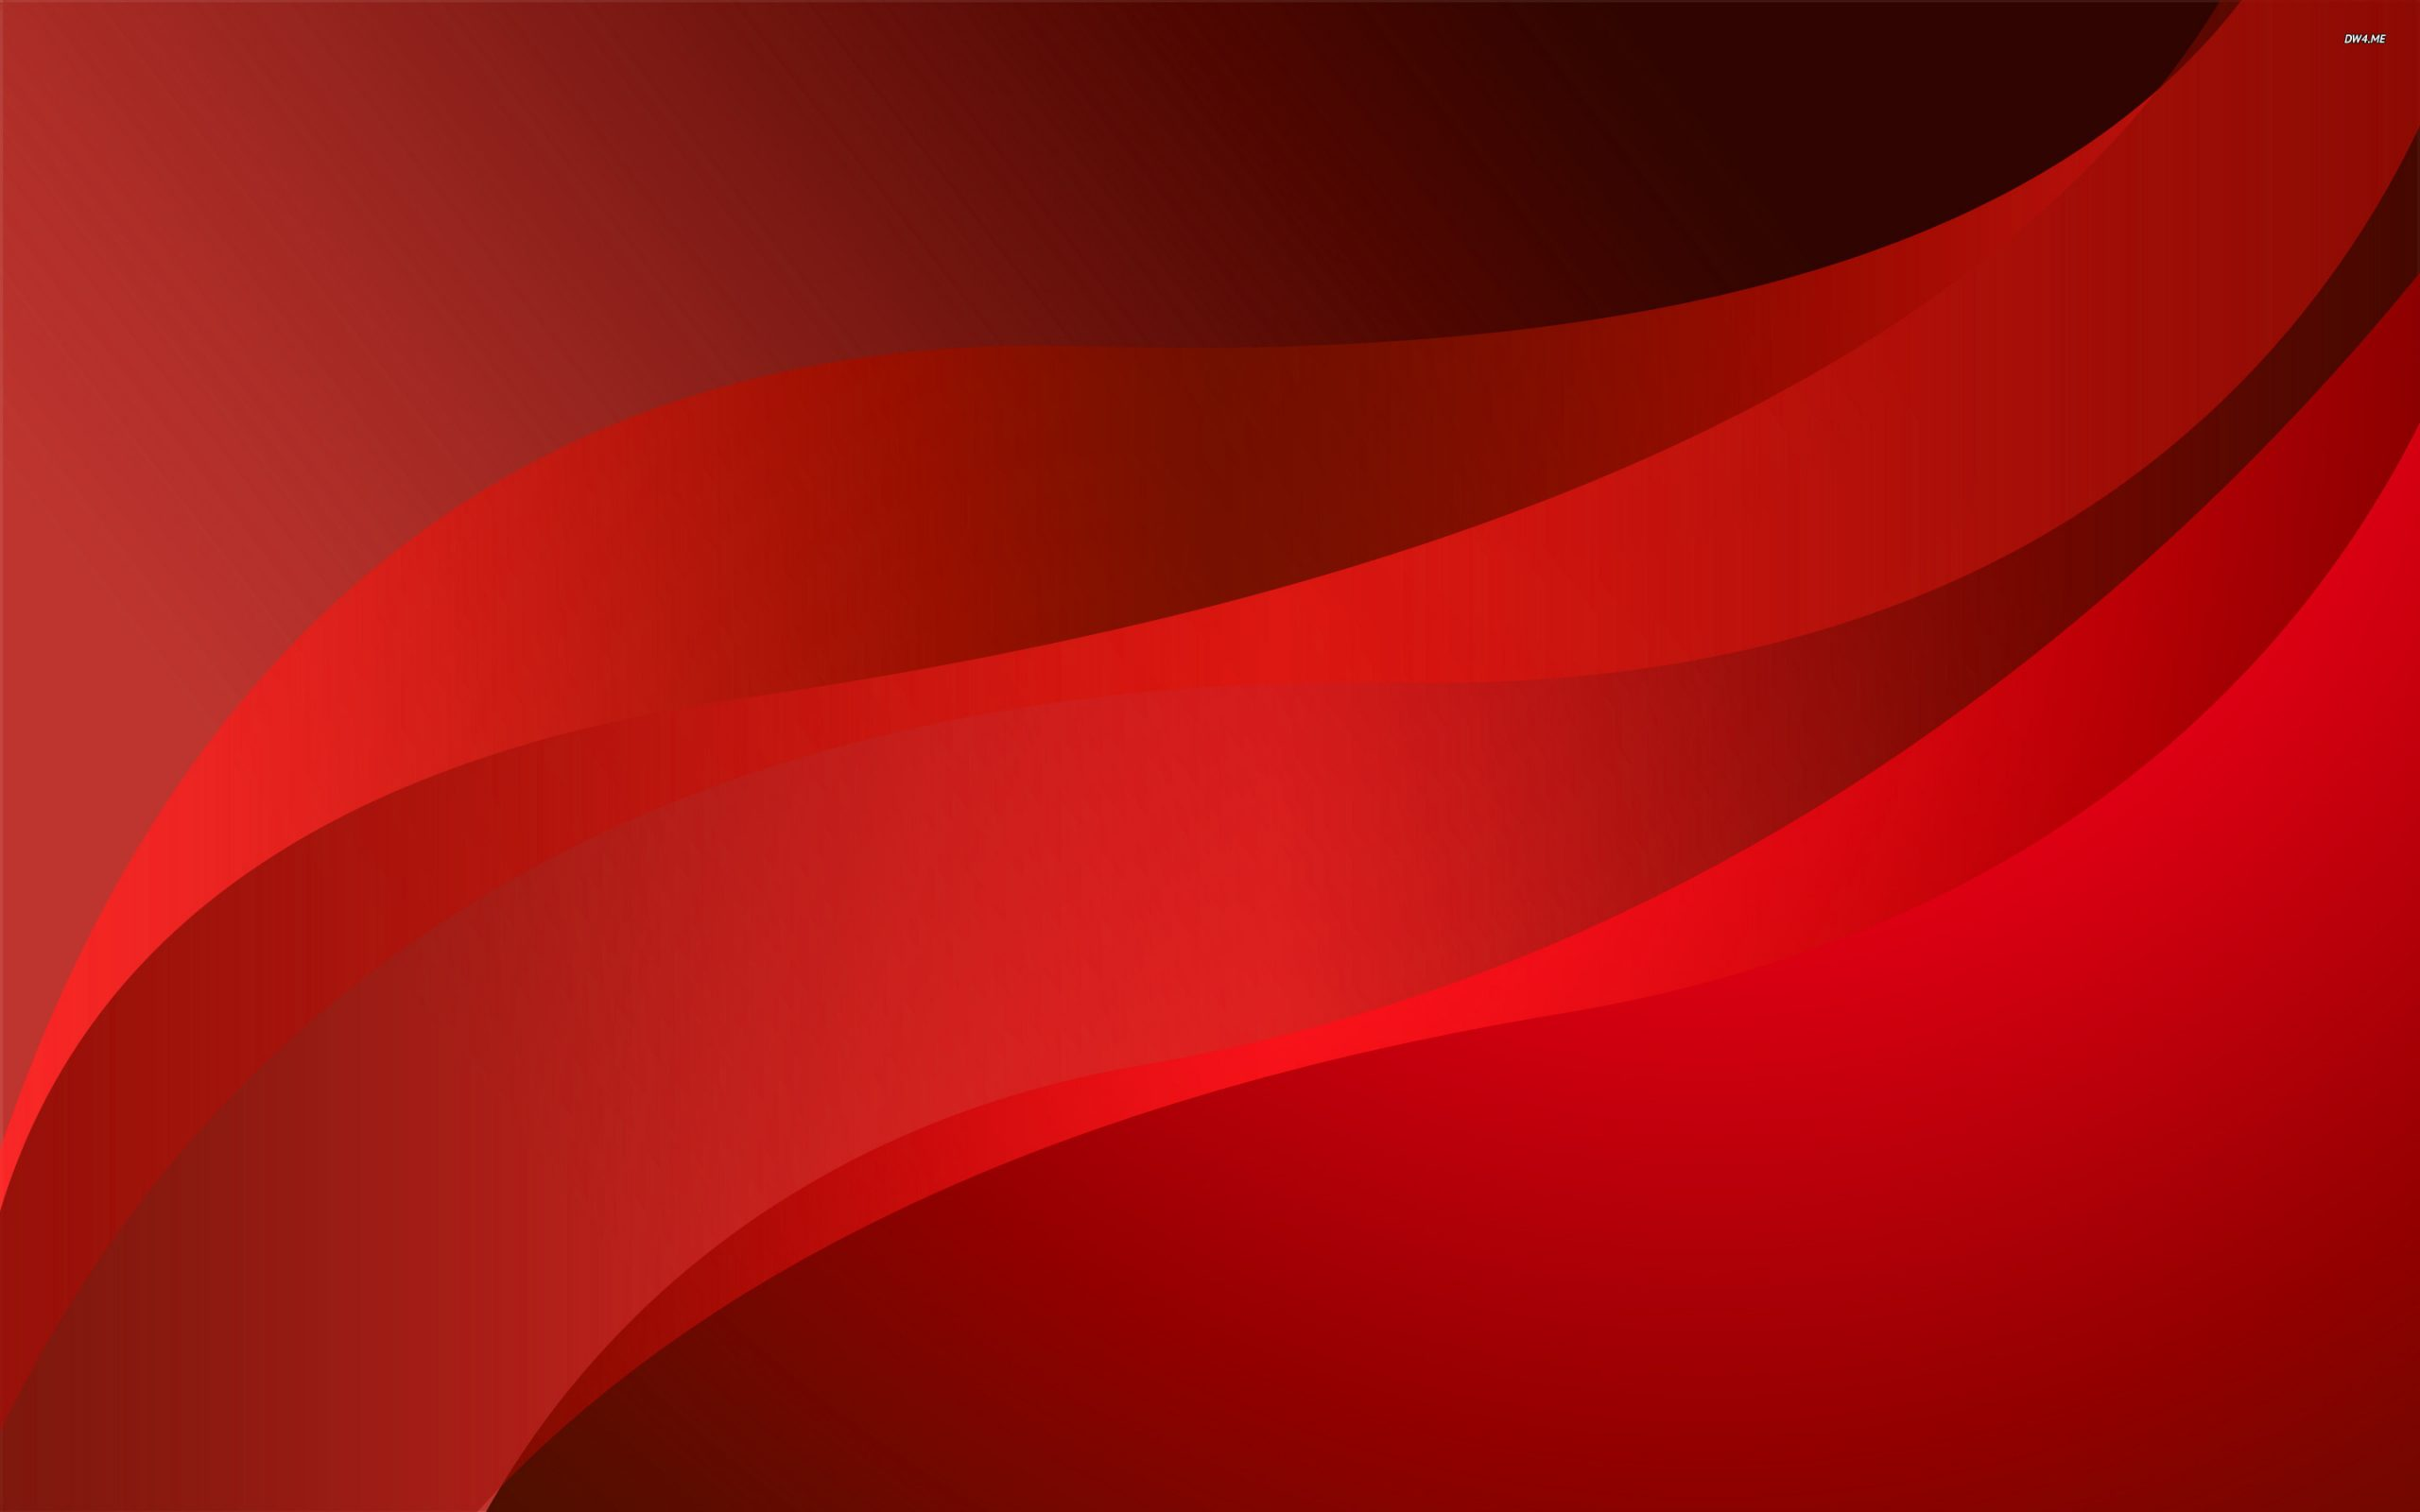 red backgrounds hd background images photos pictures yl computing red backgrounds hd background images